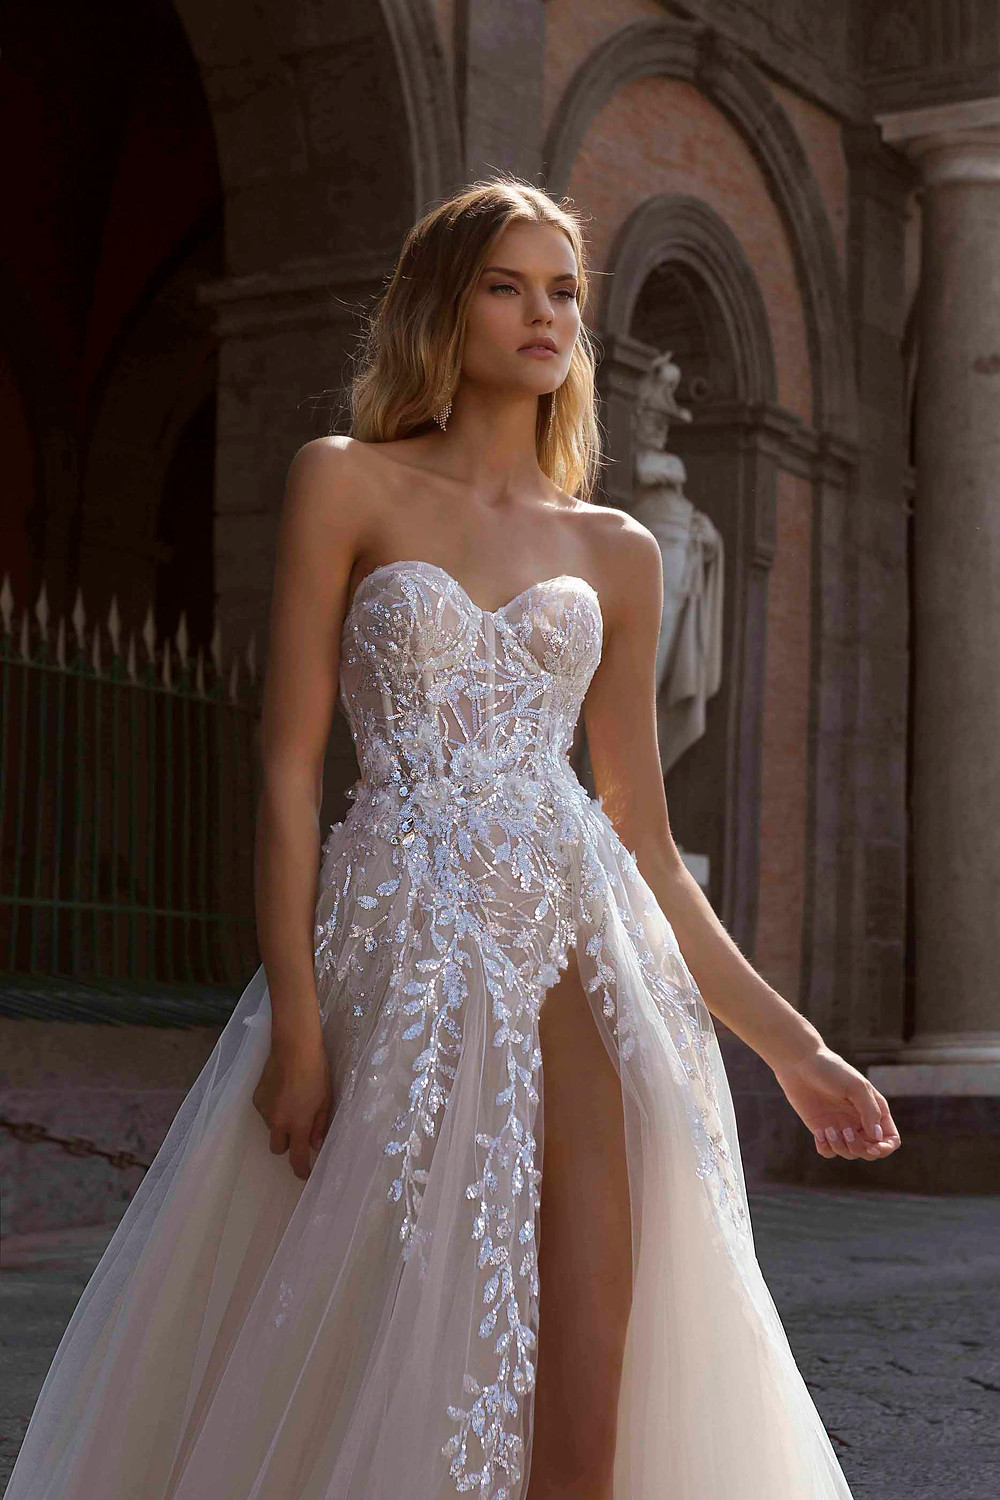 A Berta 2020 sparkle ball gown with tulle skirt, sweetheart neckline, corset top and crystals